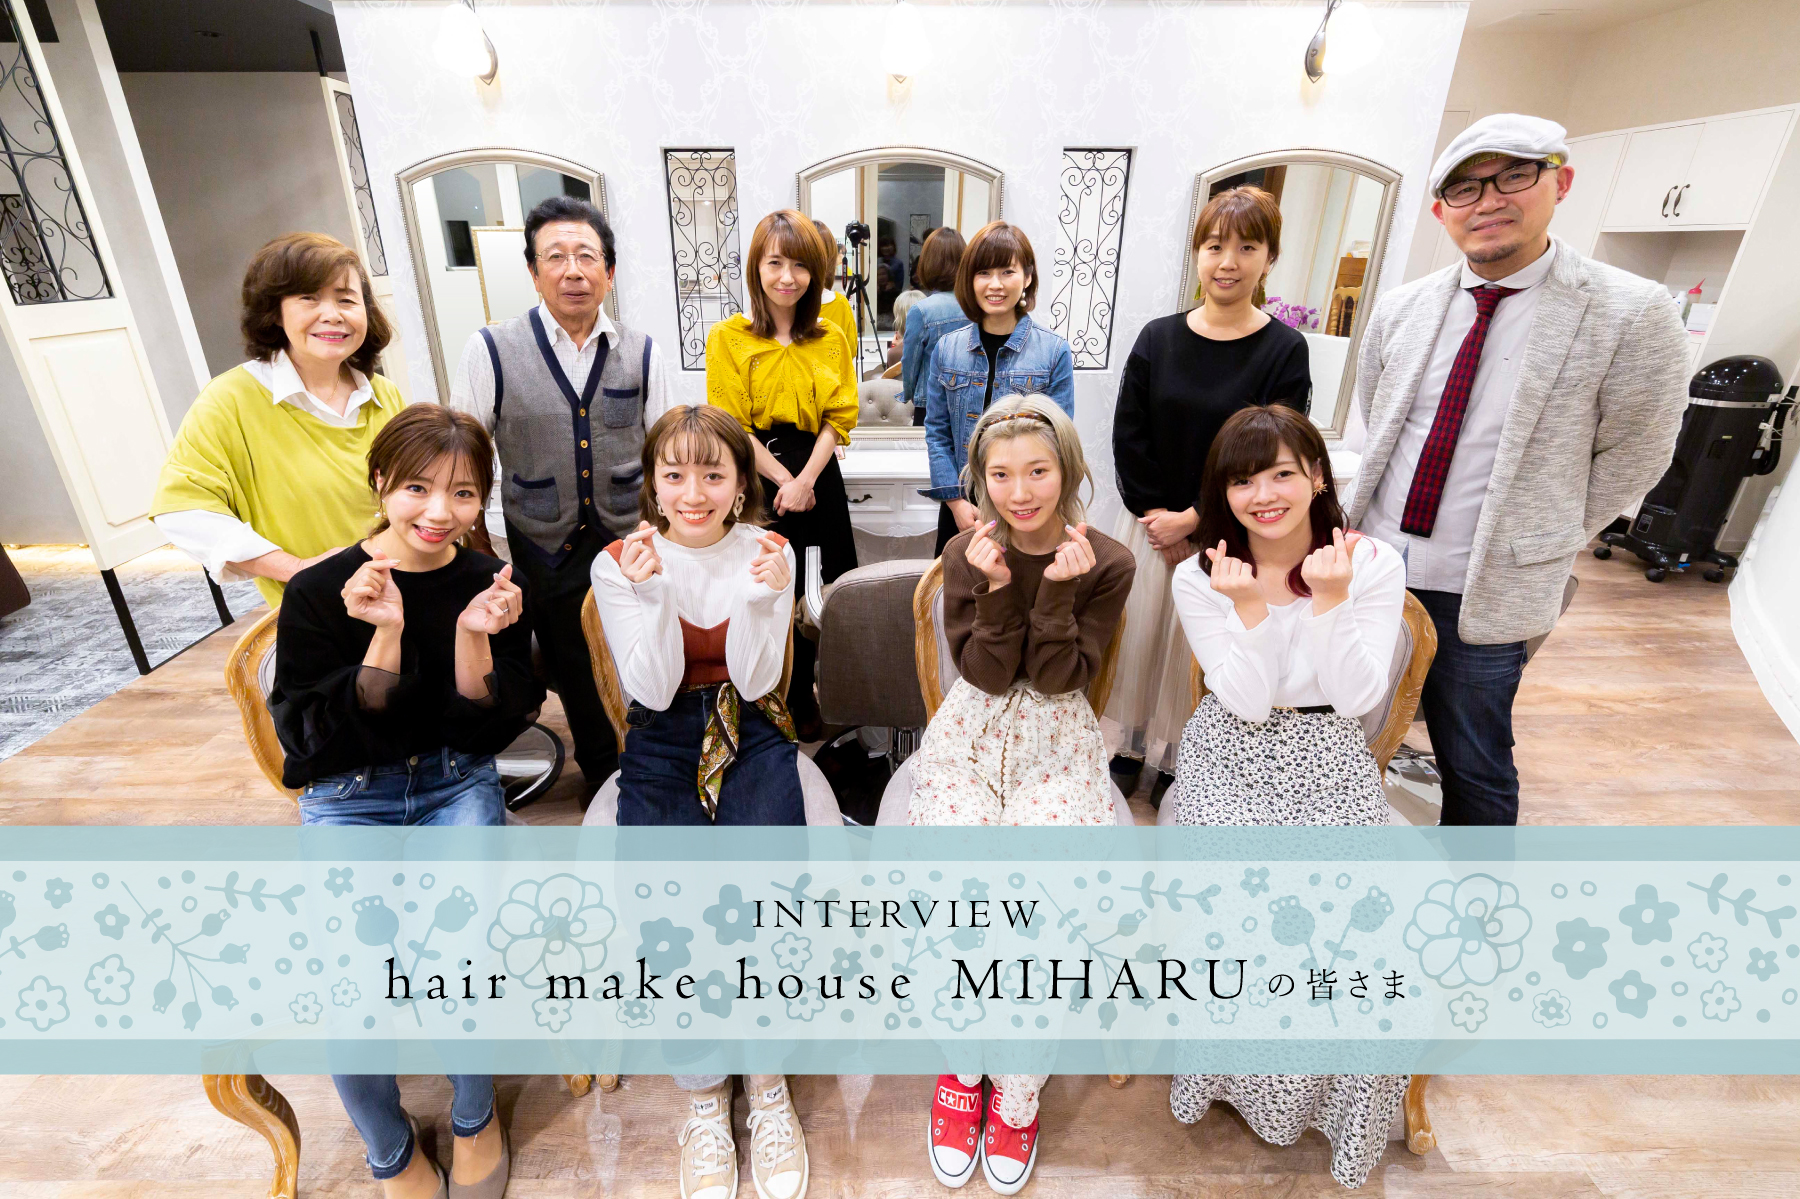 INTERVIEW|hair make house MIHARU 様